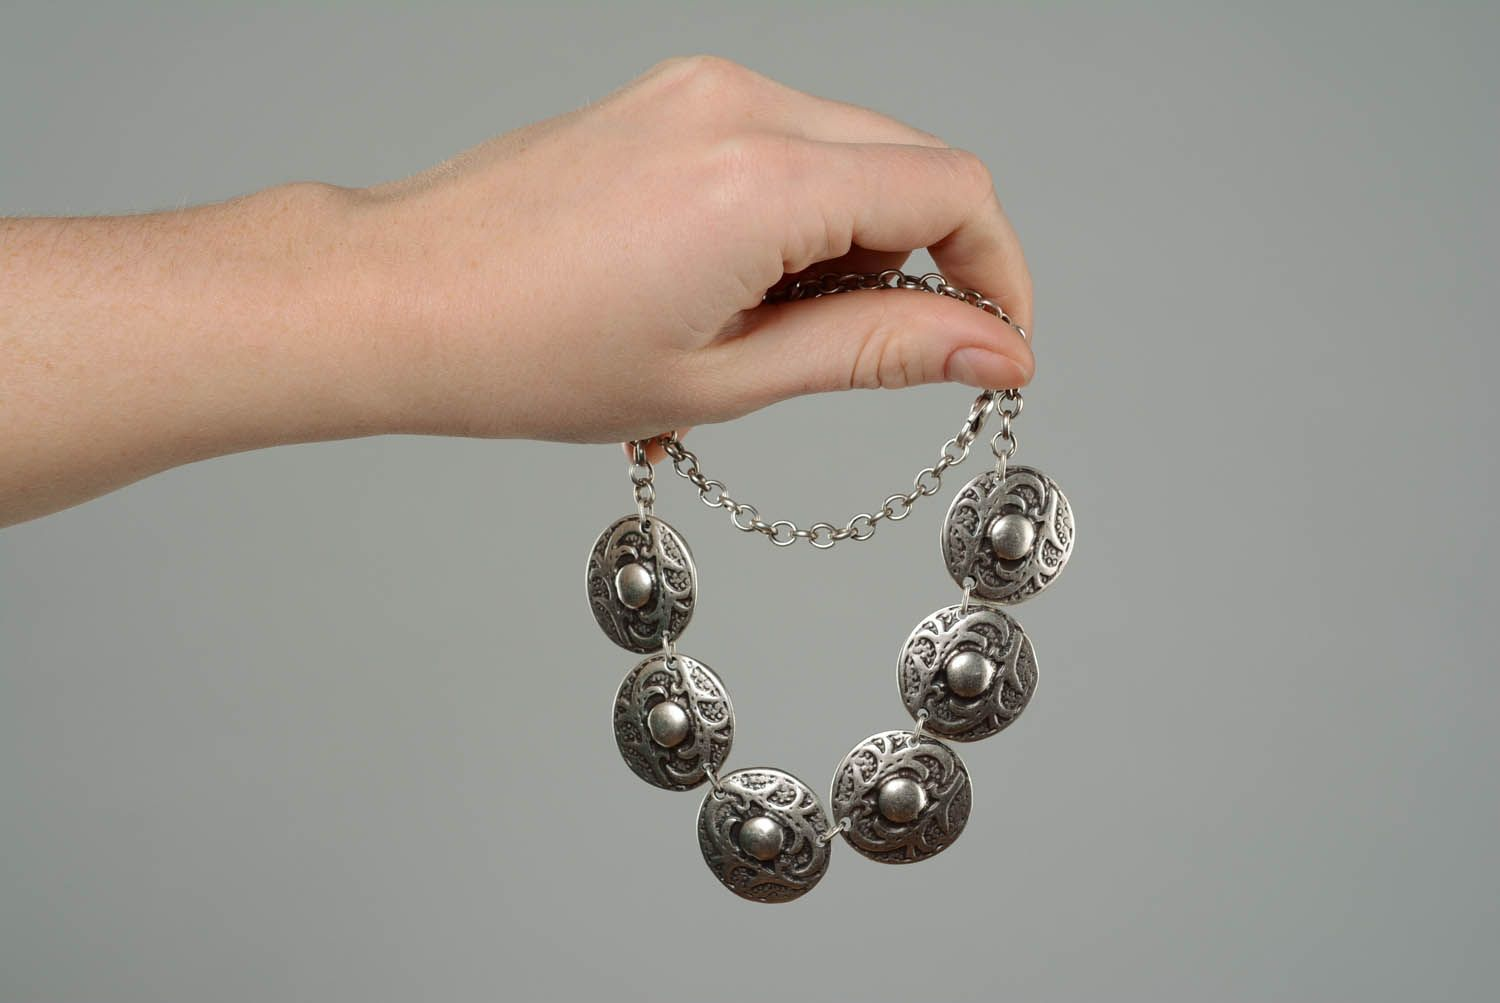 Necklace made of metal alloy photo 3